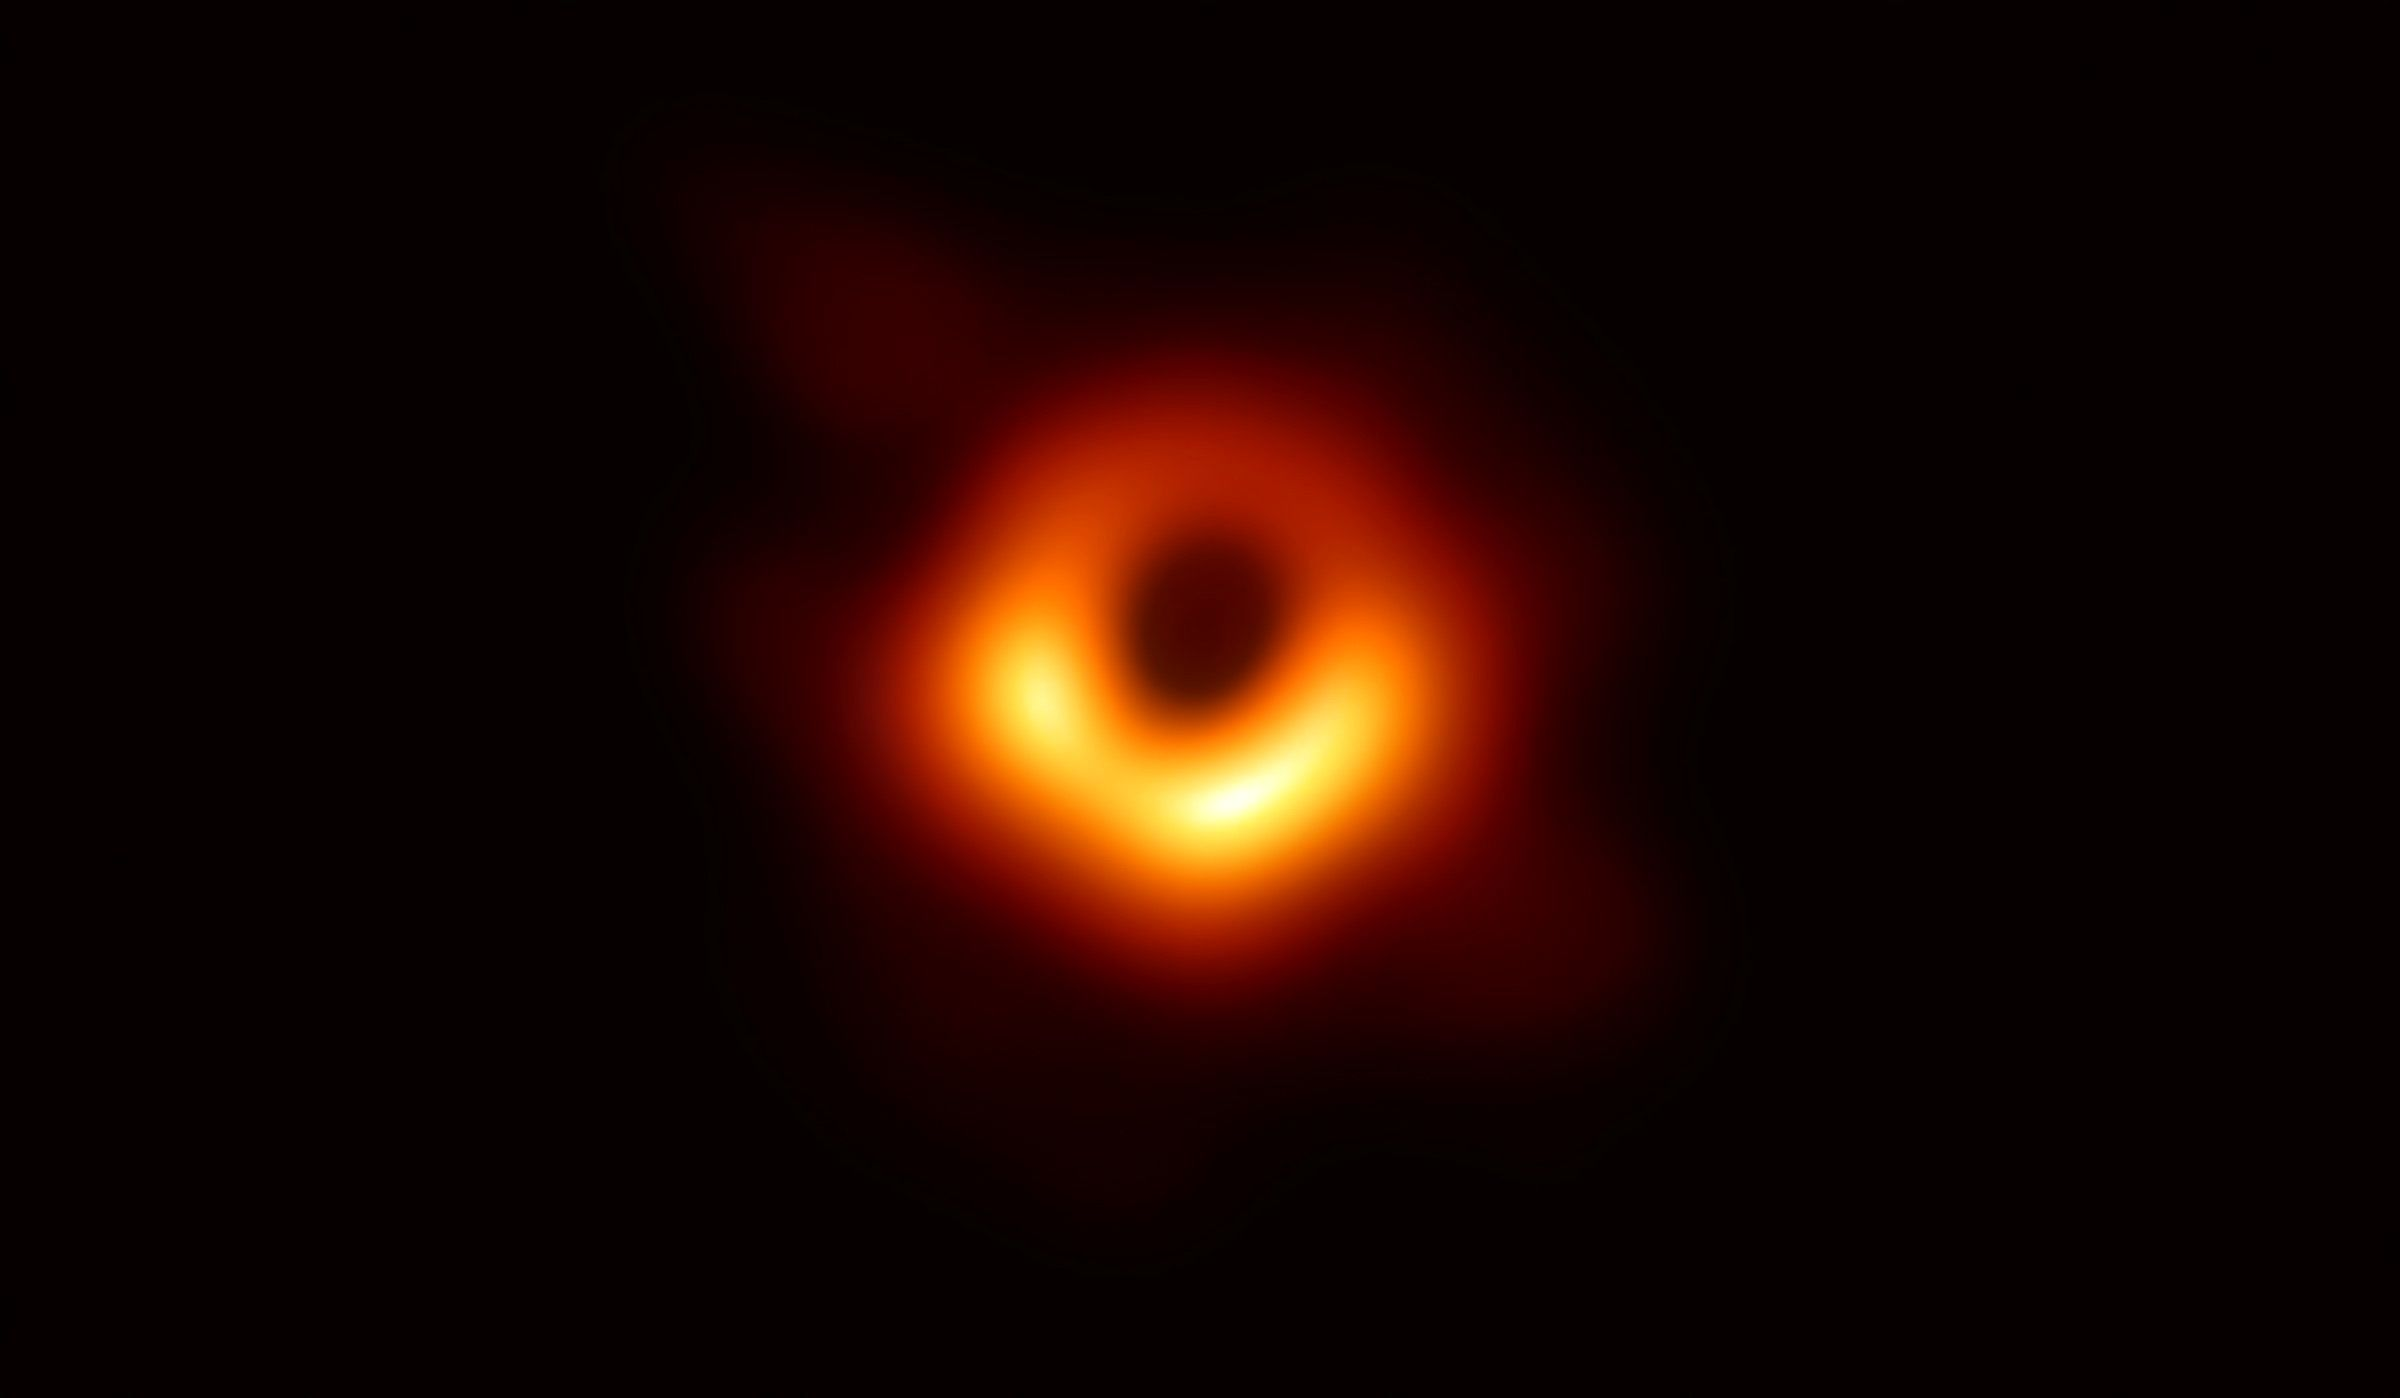 An image released on April 10 reveals the black hole at the center of Messier 87, a massive galaxy in the nearby Virgo galaxy cluster. This black hole resides 55 million light-years from Earth and has a mass 6.5-billion times that of the Sun.